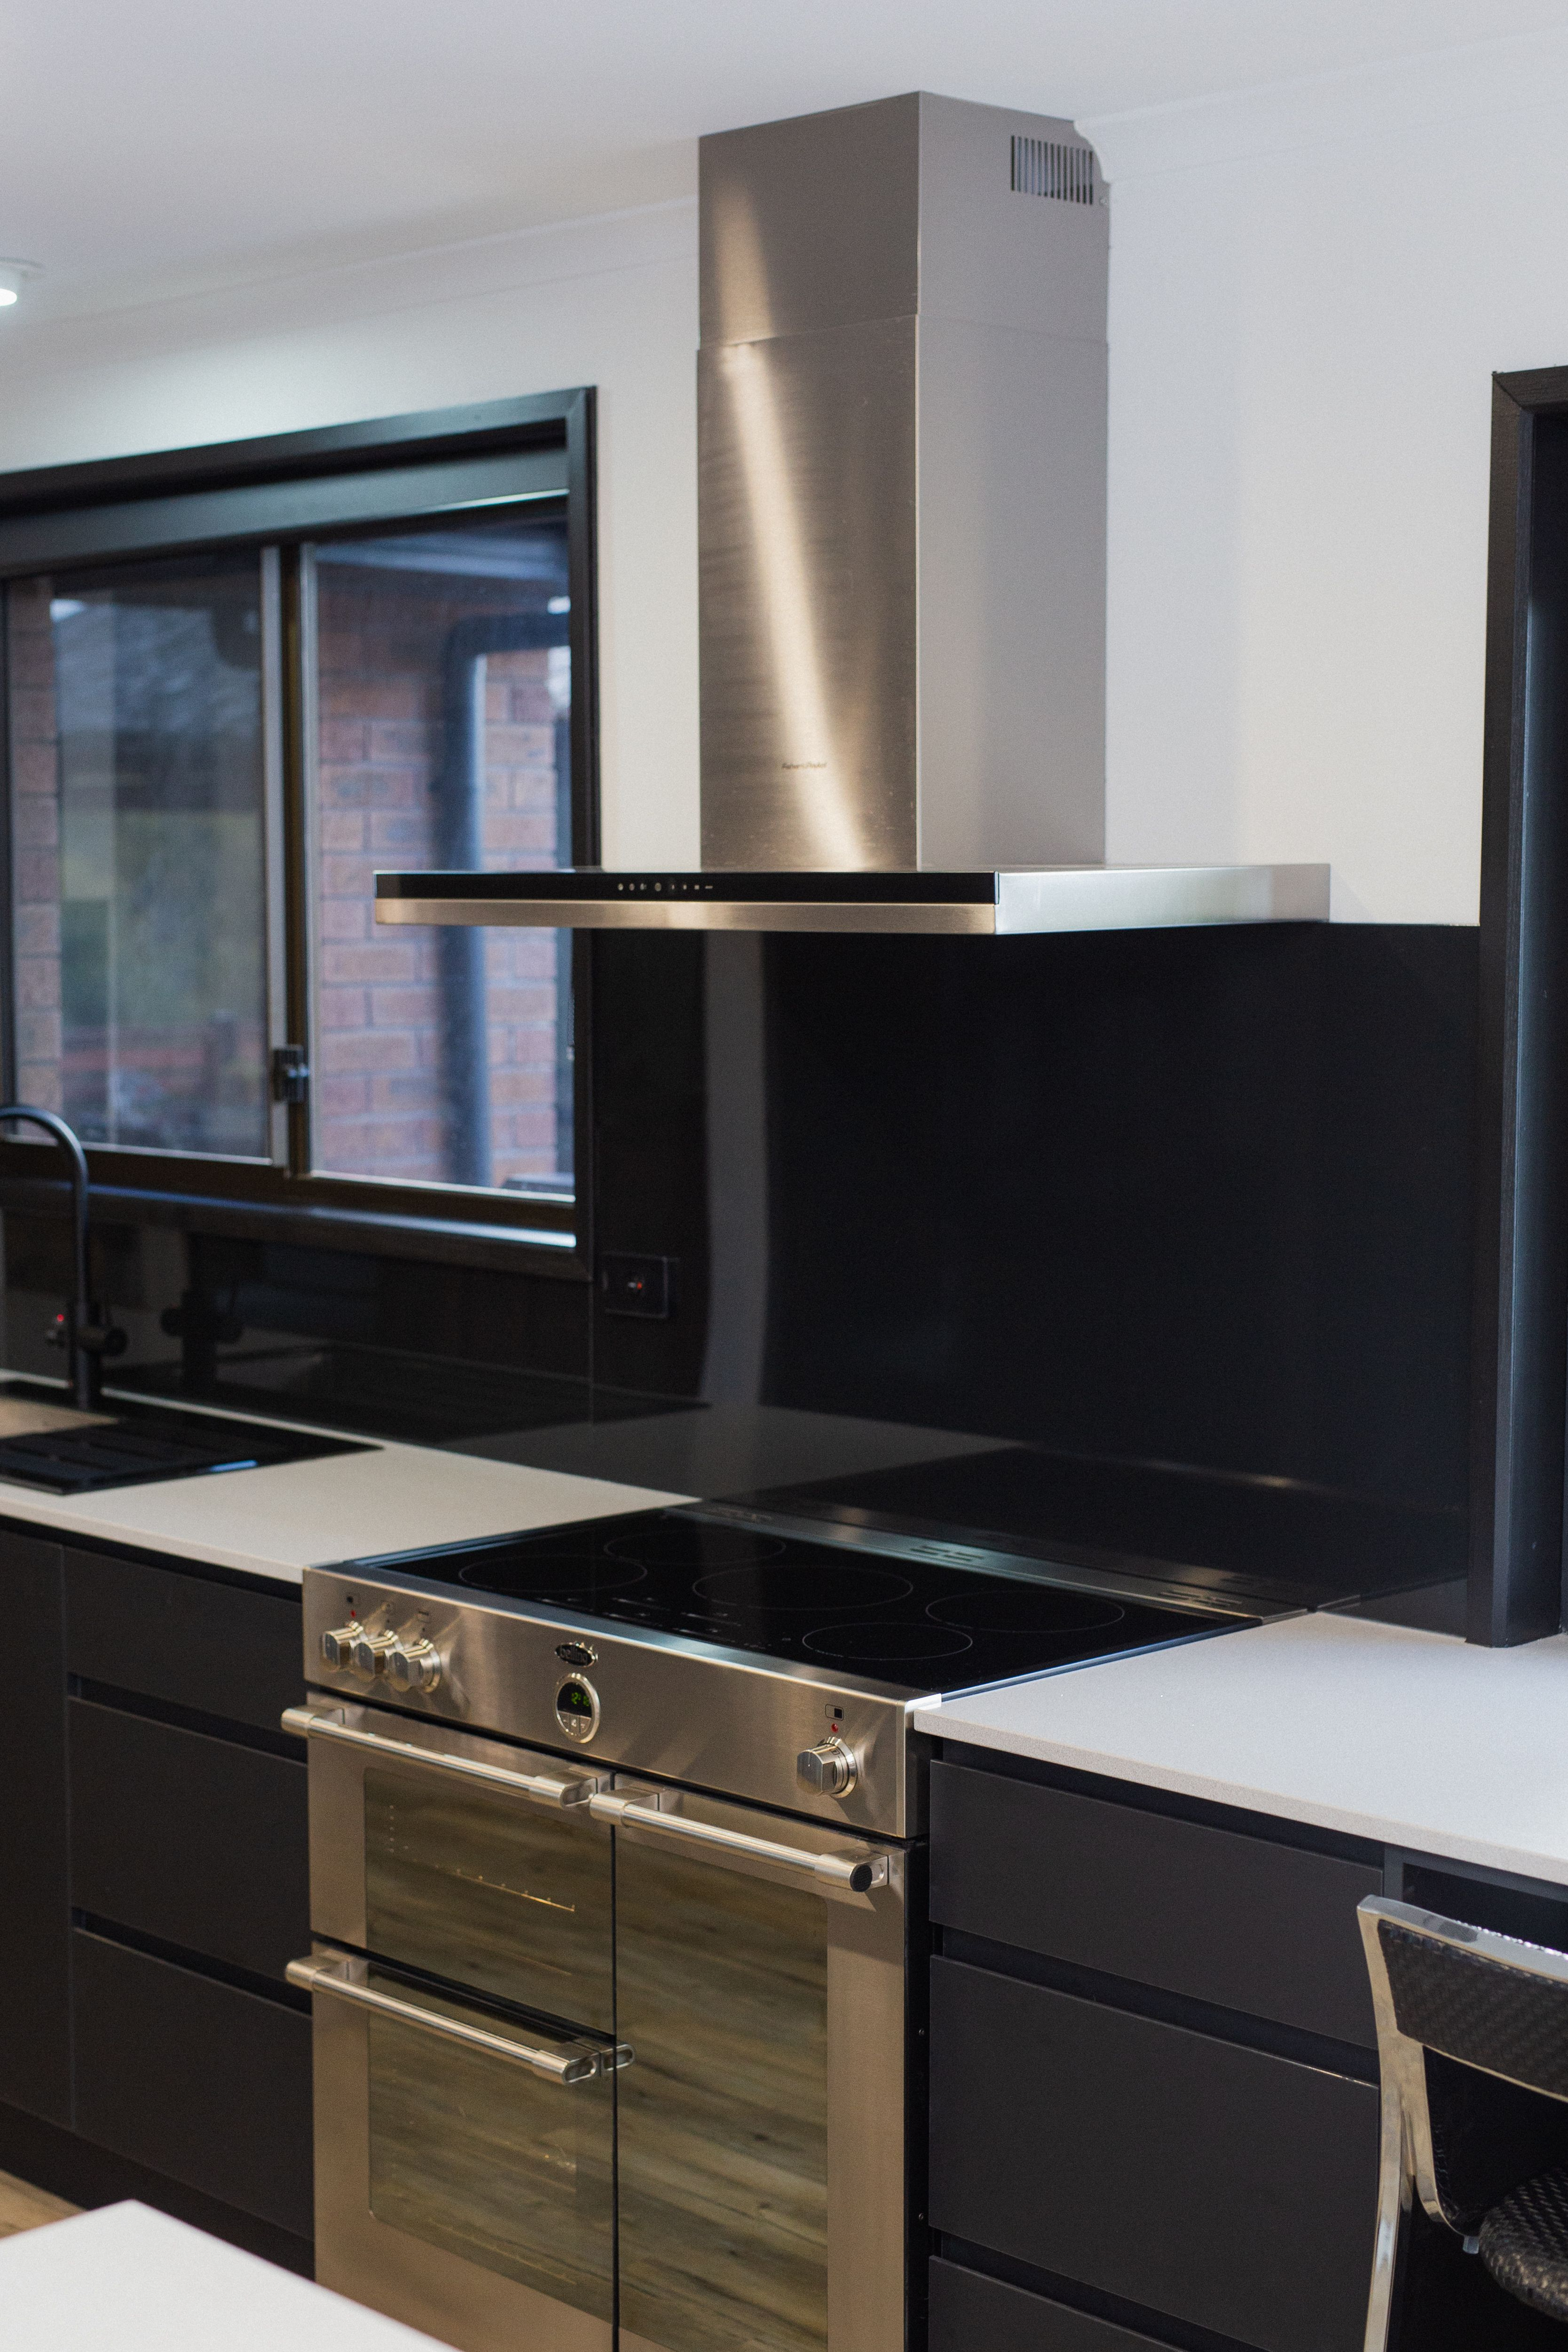 A new kitchen in an existing home   Contemporary kitchen design ...